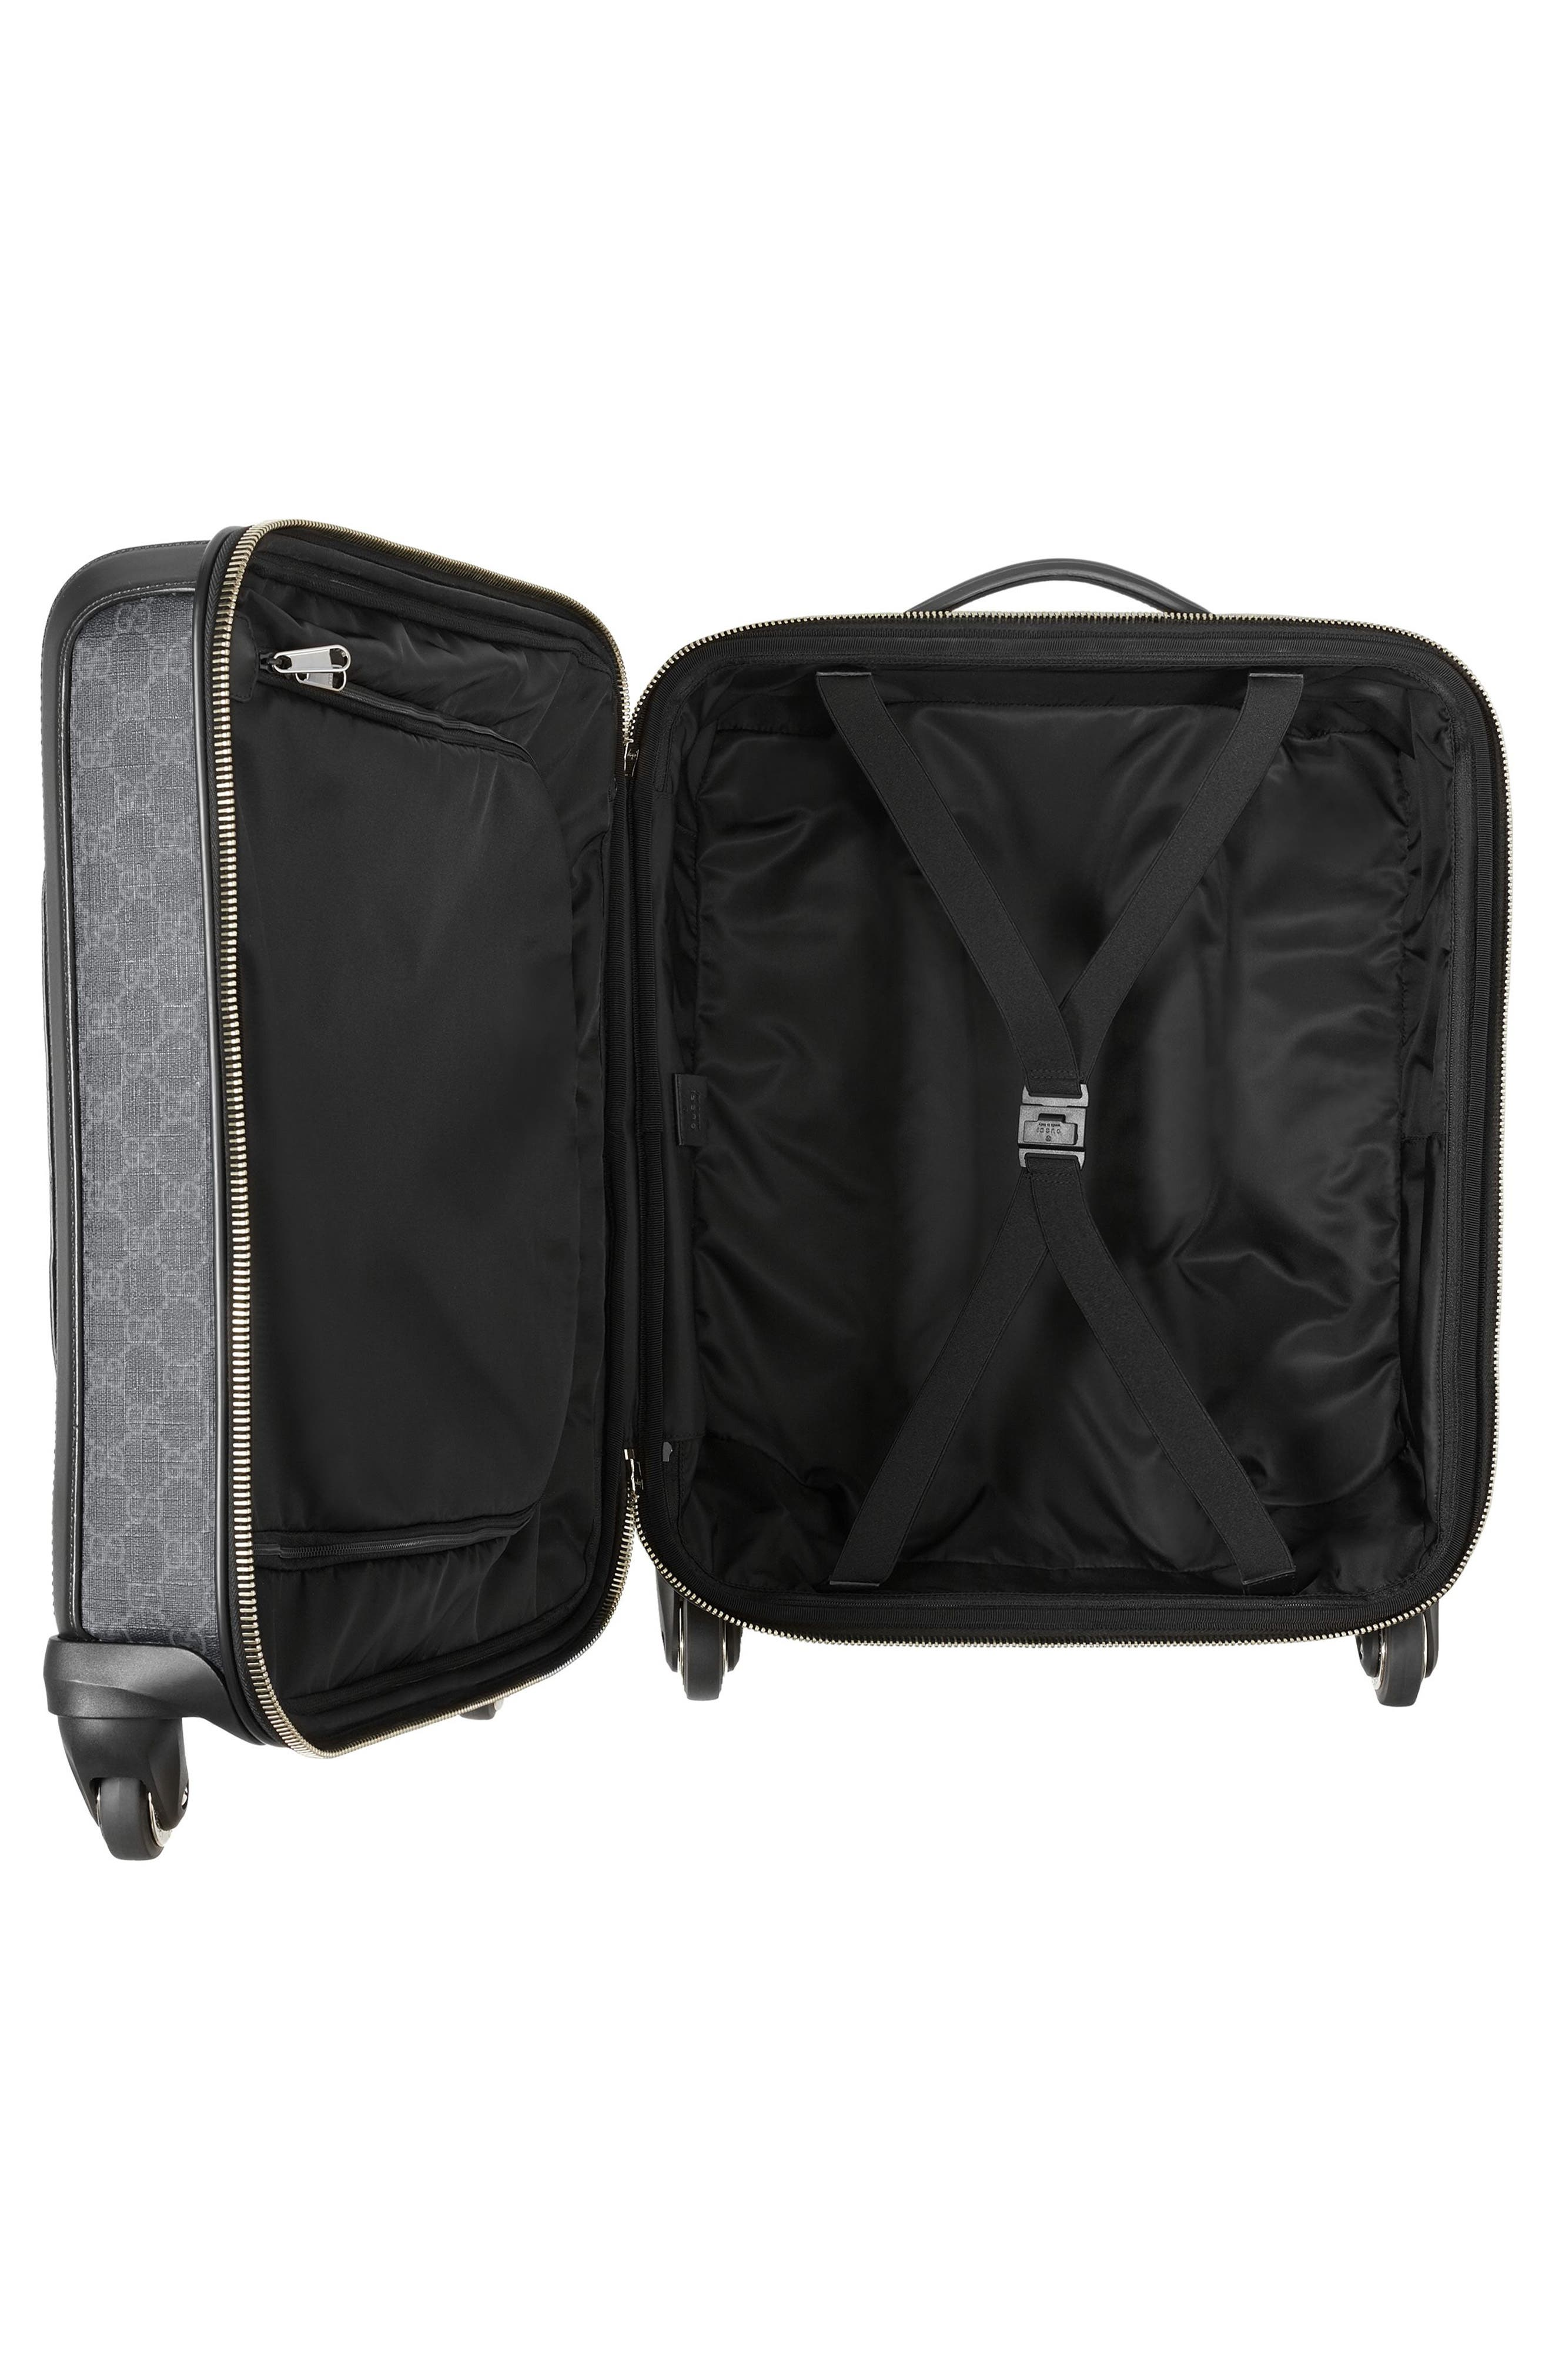 Gran Turismo 19-Inch Carry-On,                             Alternate thumbnail 2, color,